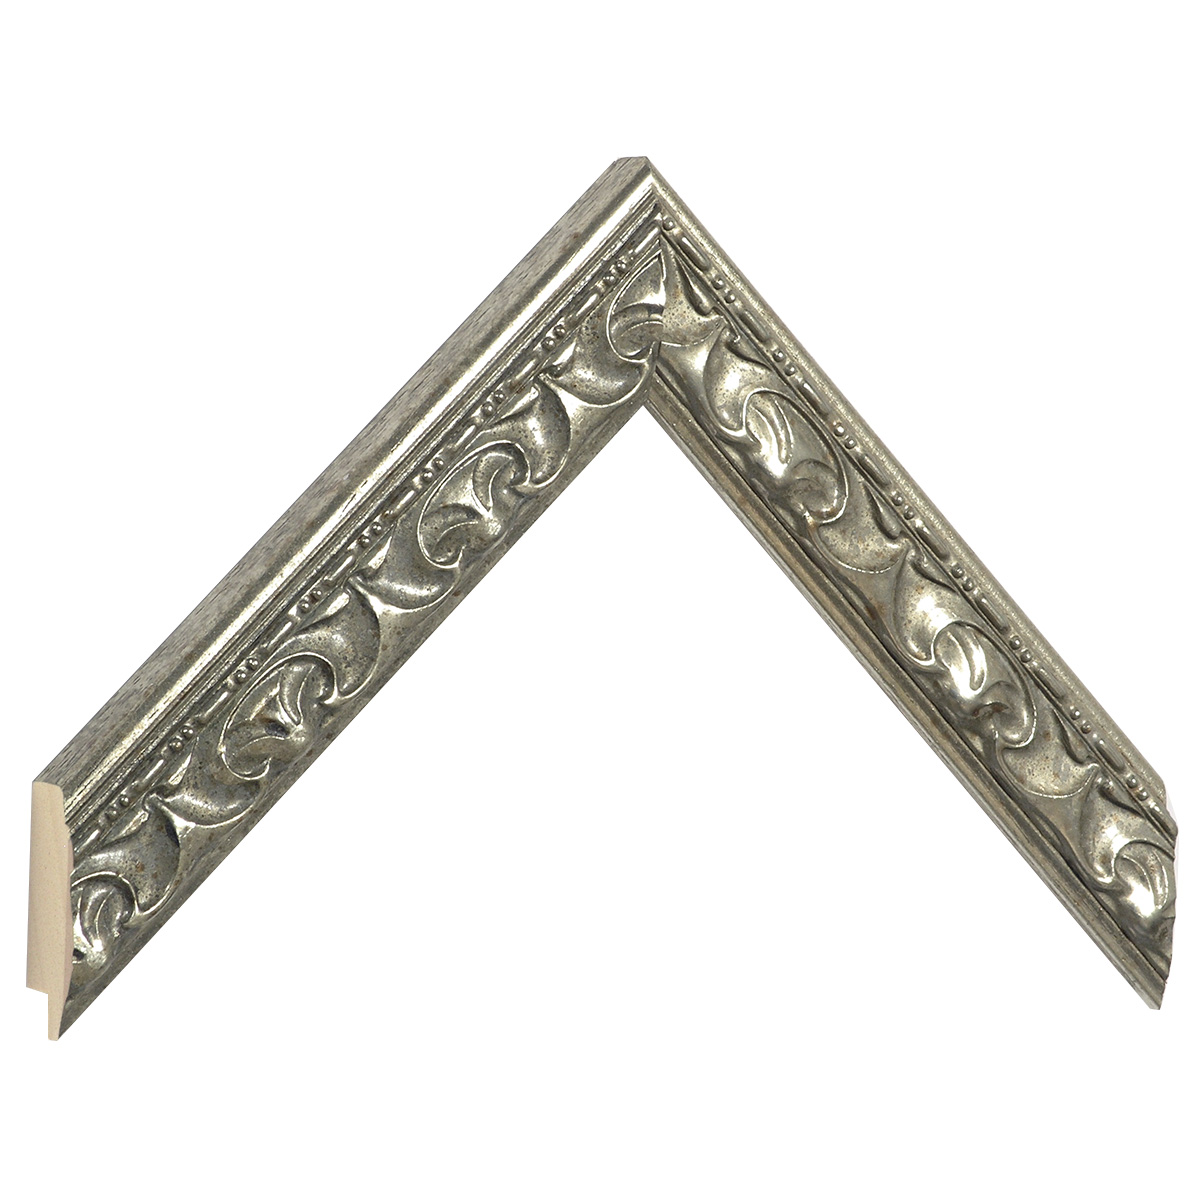 Moulding ayous silver with relief decorations